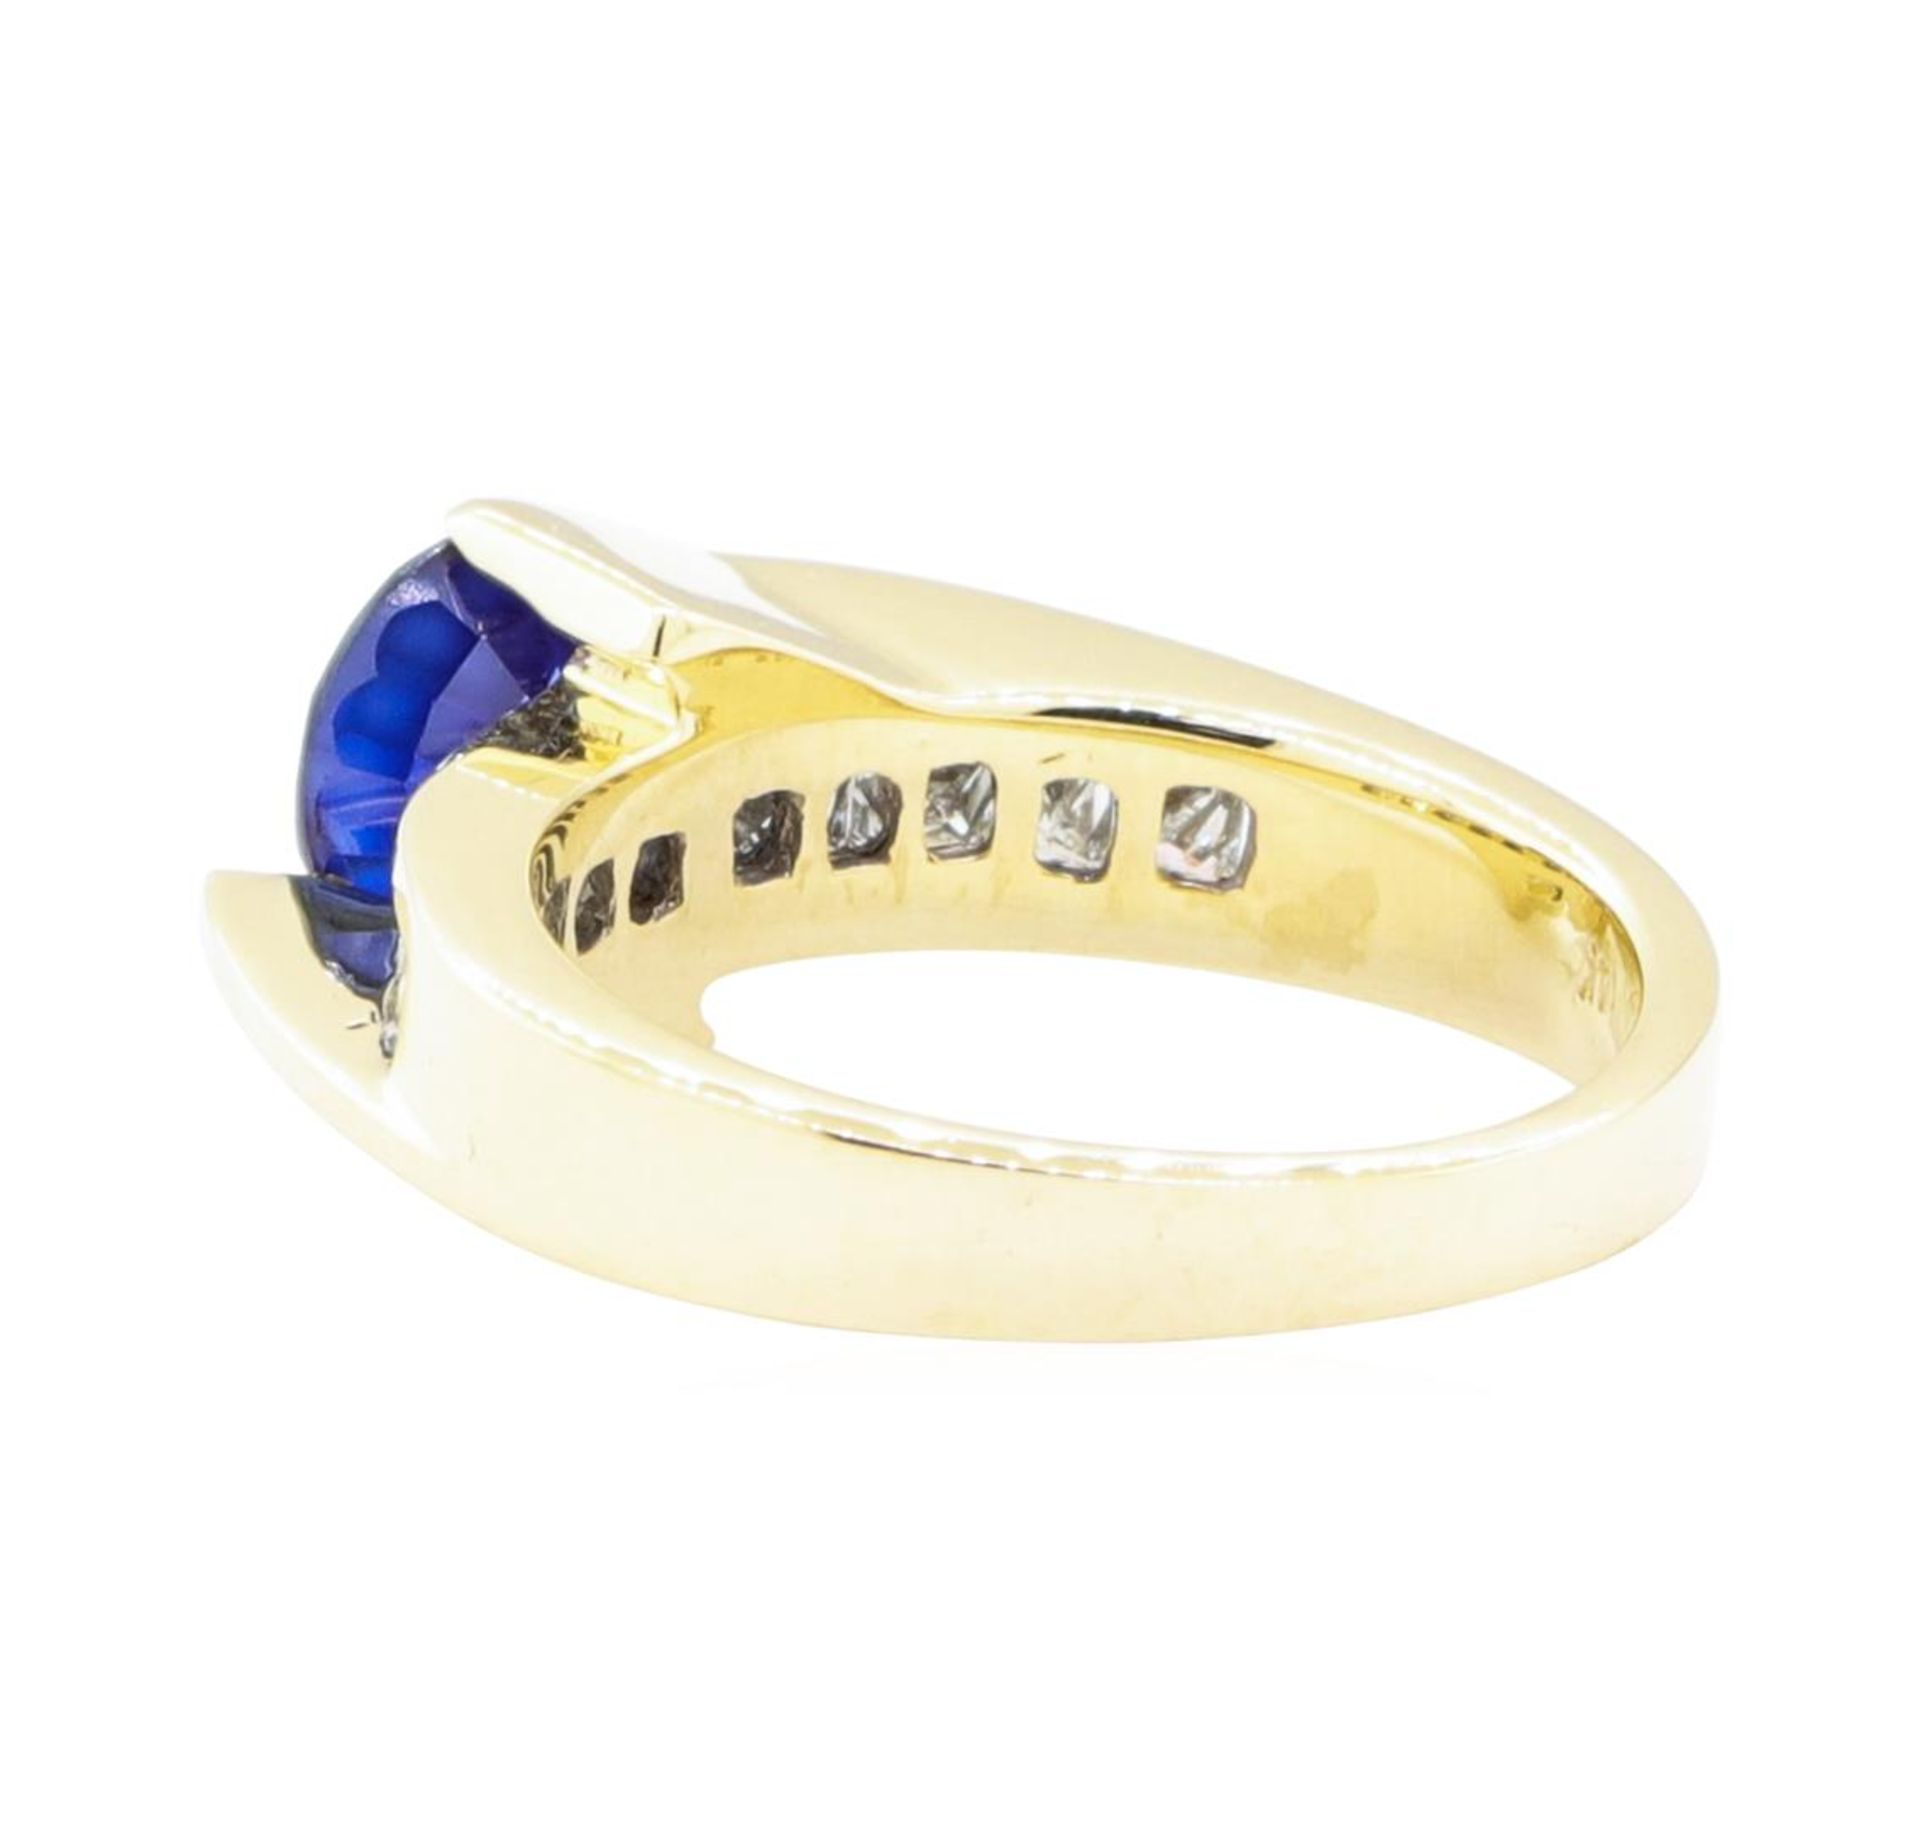 2.14 ctw Sapphire And Diamond Ring - 14KT Yellow Gold - Image 3 of 5